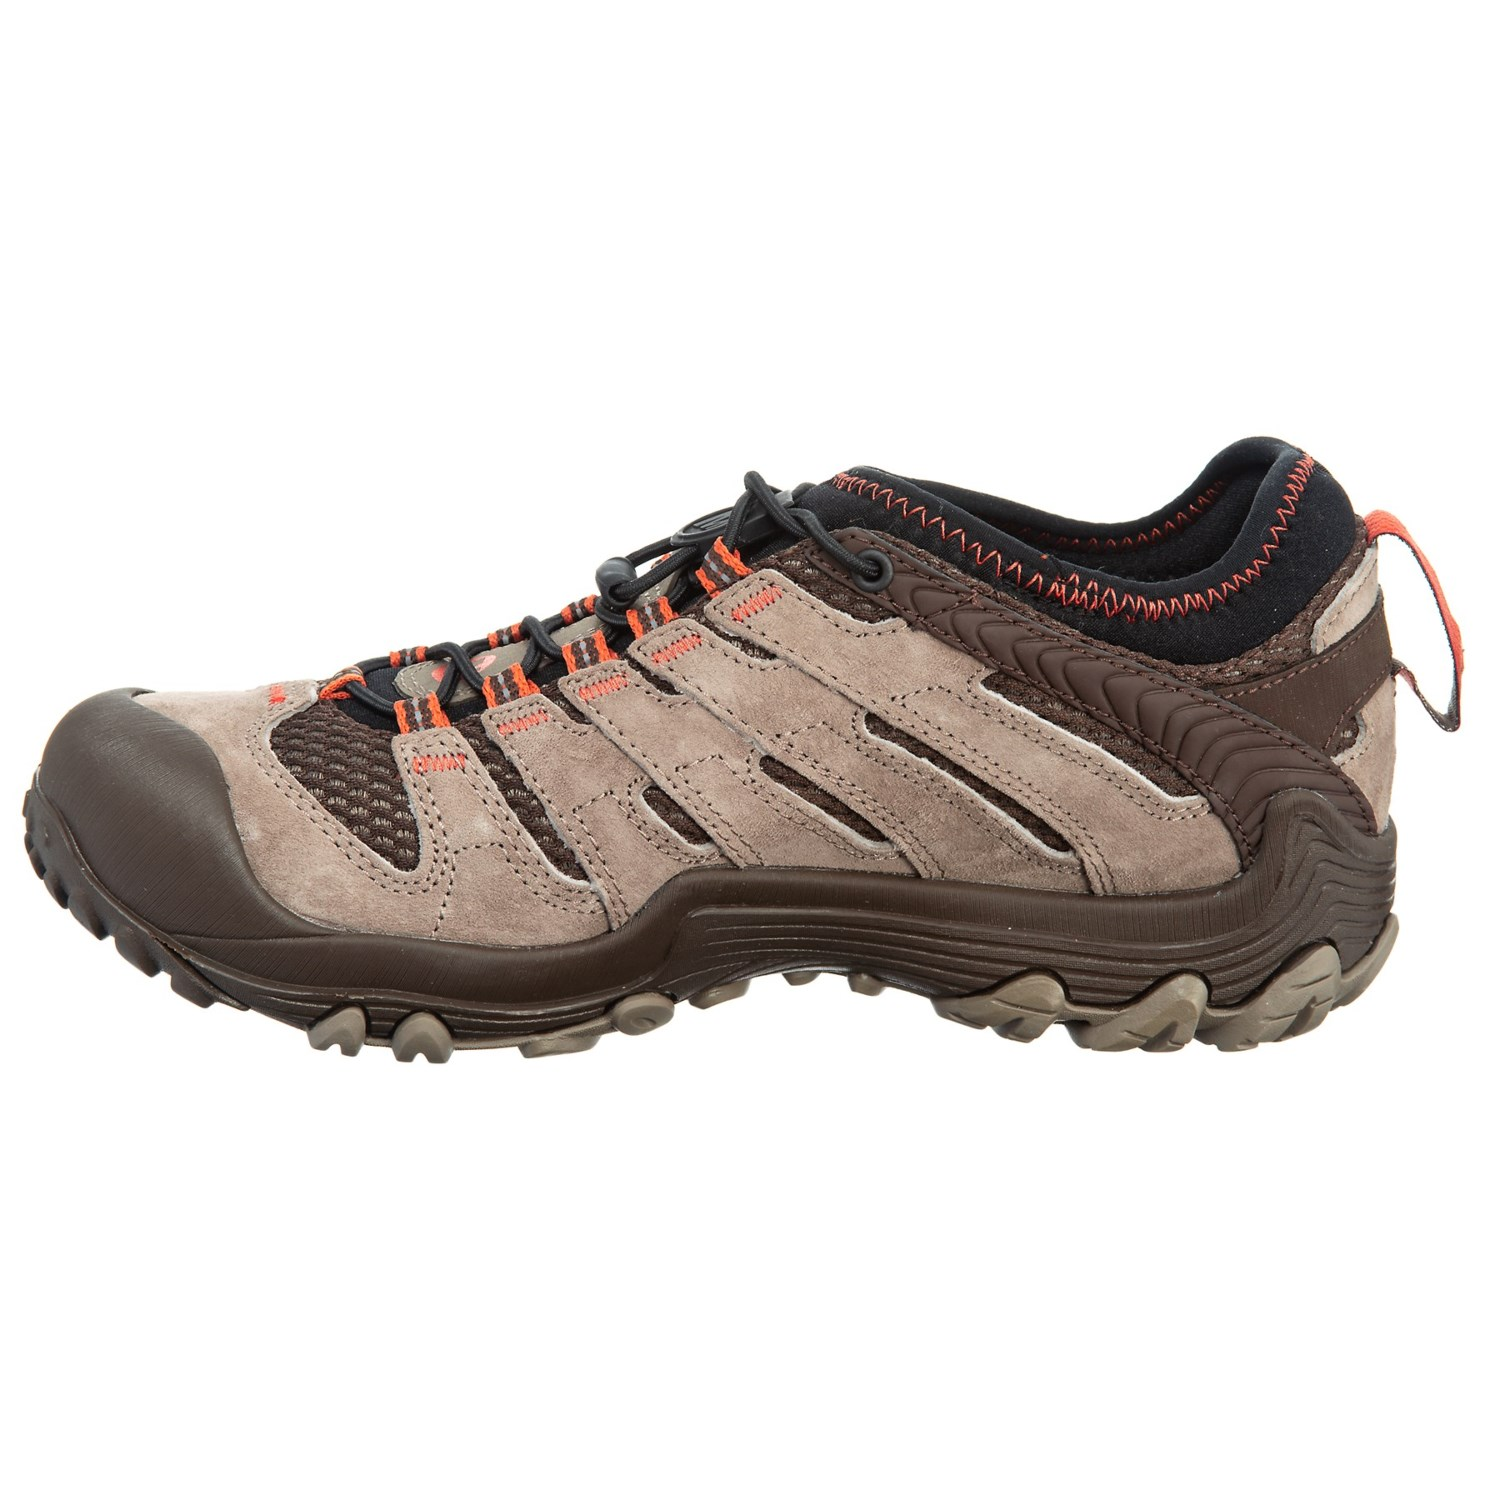 4029687ede4 Merrell Chameleon 7 Limit Stretch Hiking Shoes (For Women) - Save 28%